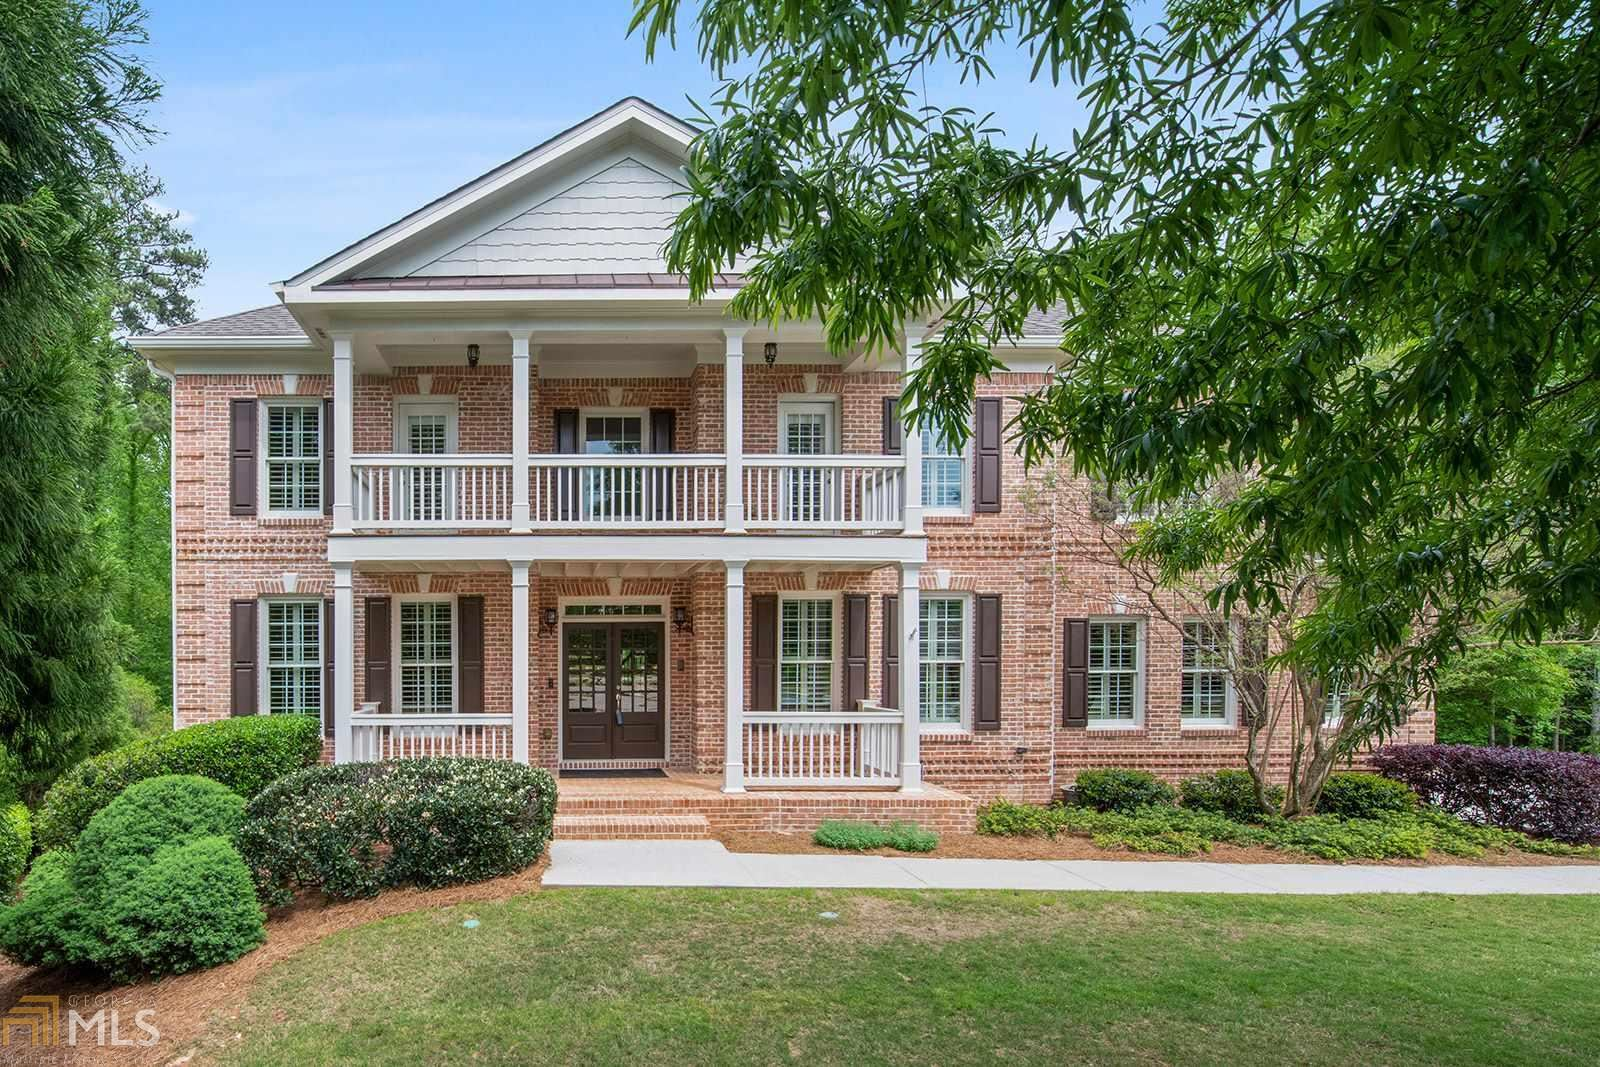 180 Amberly Pl, Roswell, GA 30075 - #: 8755225